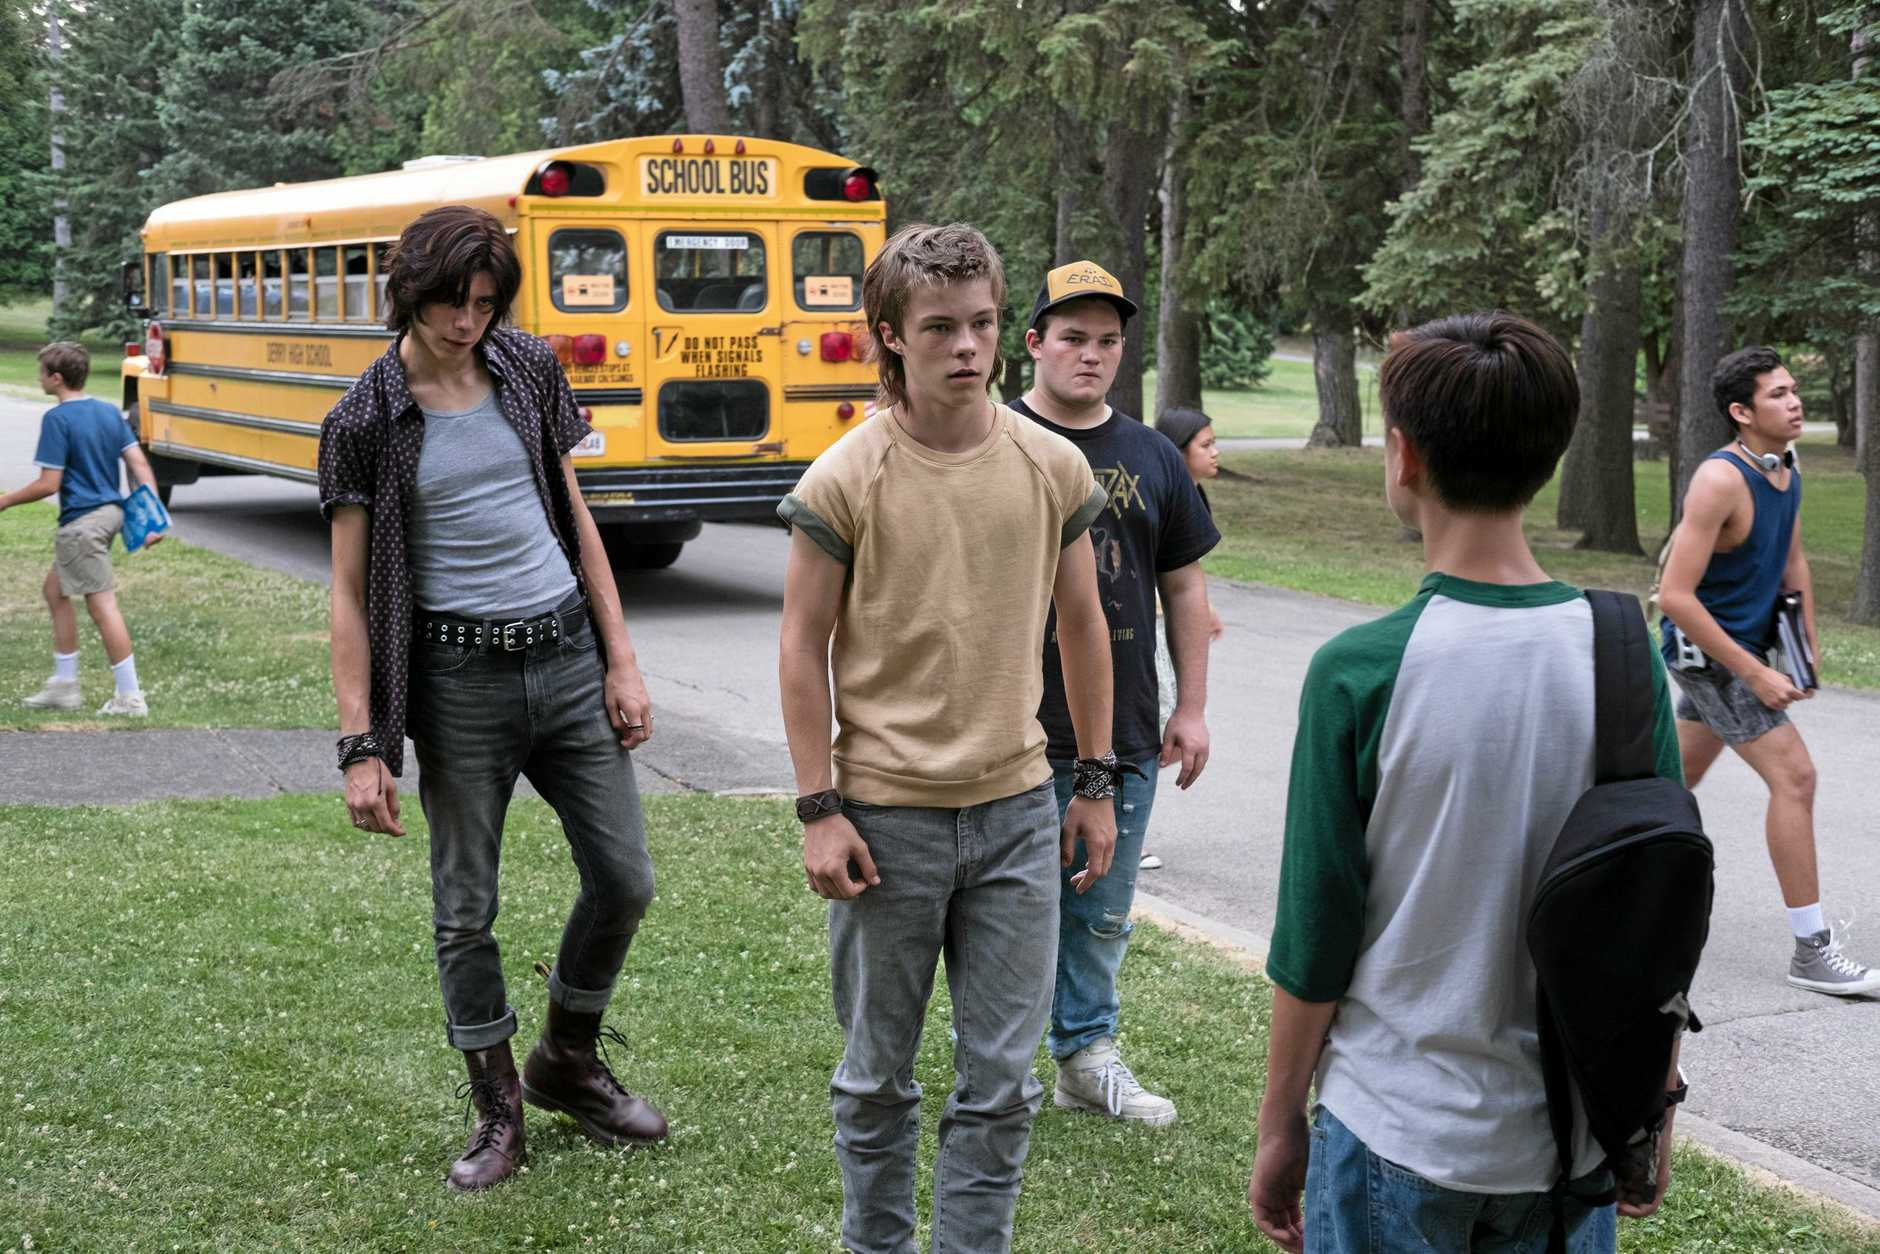 FOR PRINT USE ONLY. Owen Teague, Nicholas Hamilton, Jake Sim and Jack Dylan Grazer in a scene from the movie It. Supplied by Warner Bros.